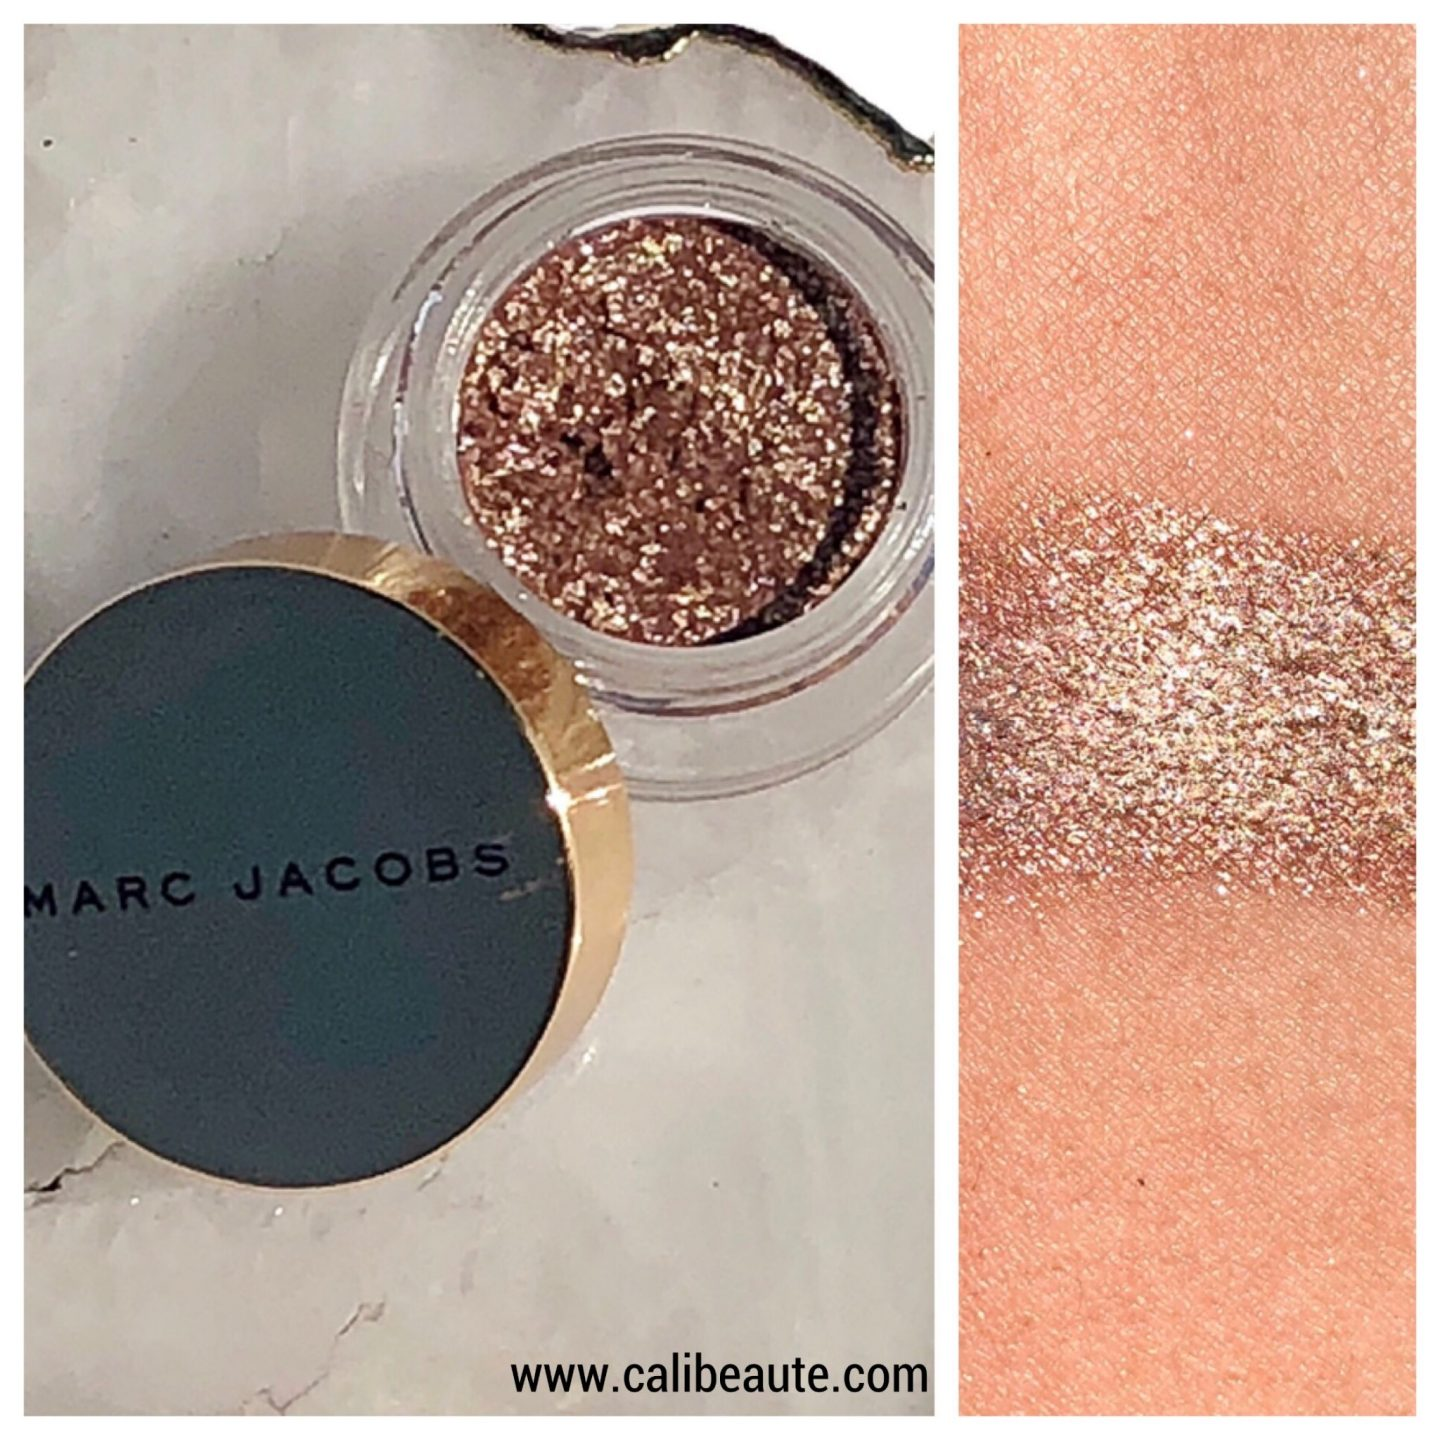 Marc Jacobs Gleam Girl sequins eyeshadow www.calibeaute.com